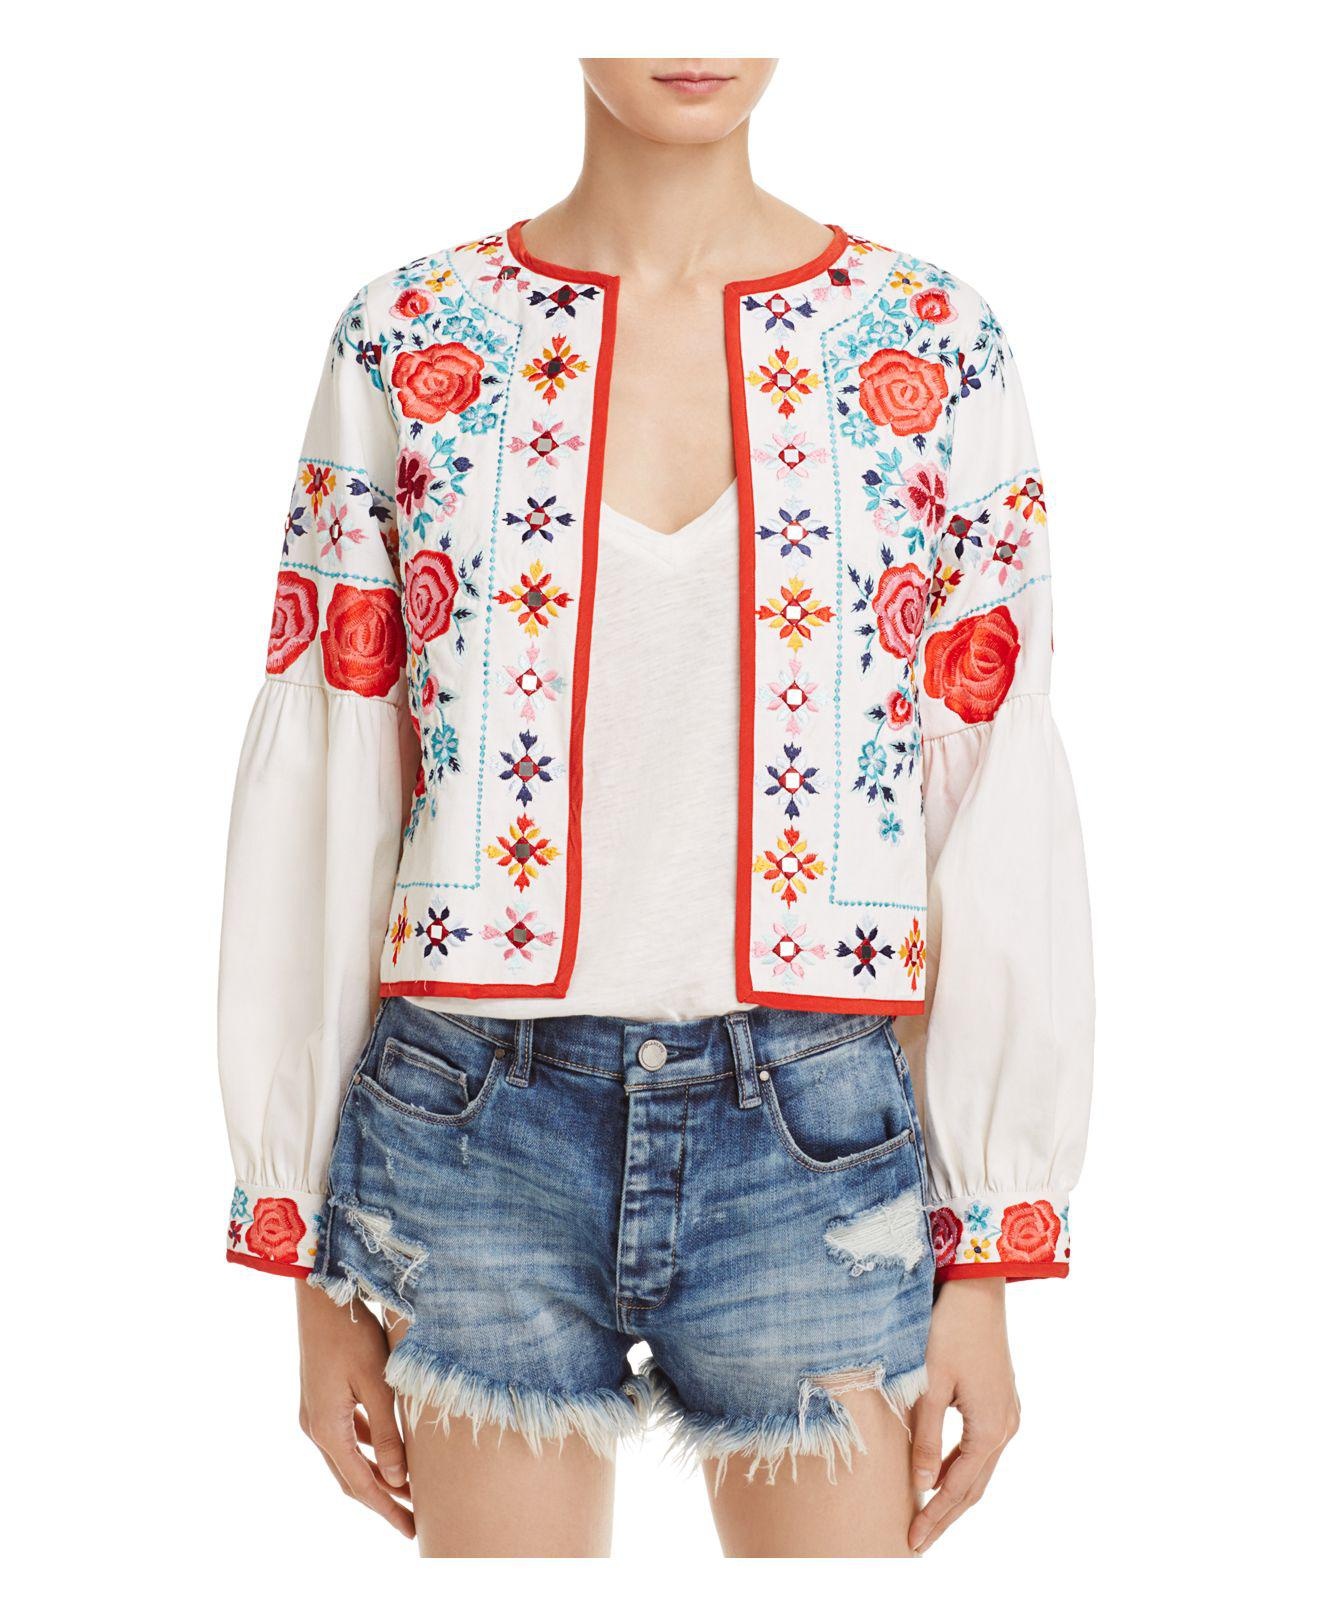 Lyst misa valentina embroidered jacket in white